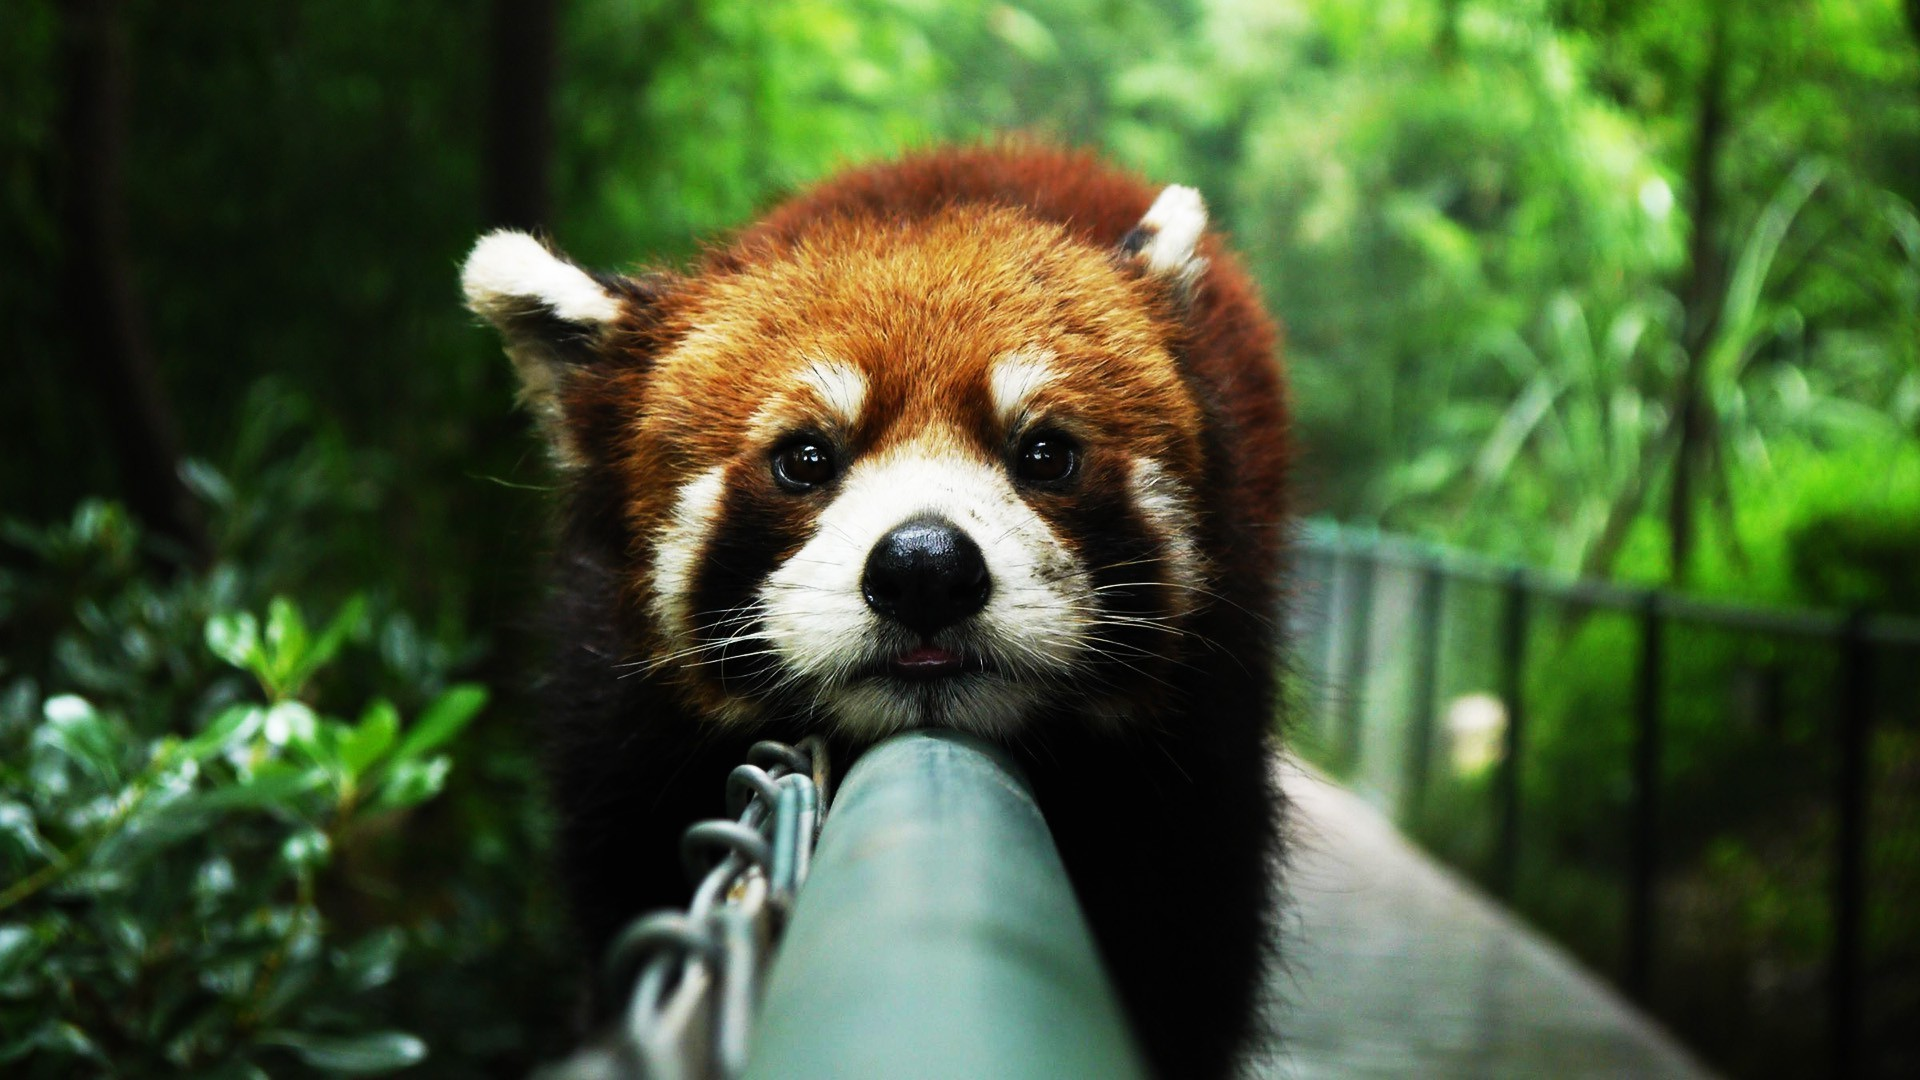 Desktop red panda bear images